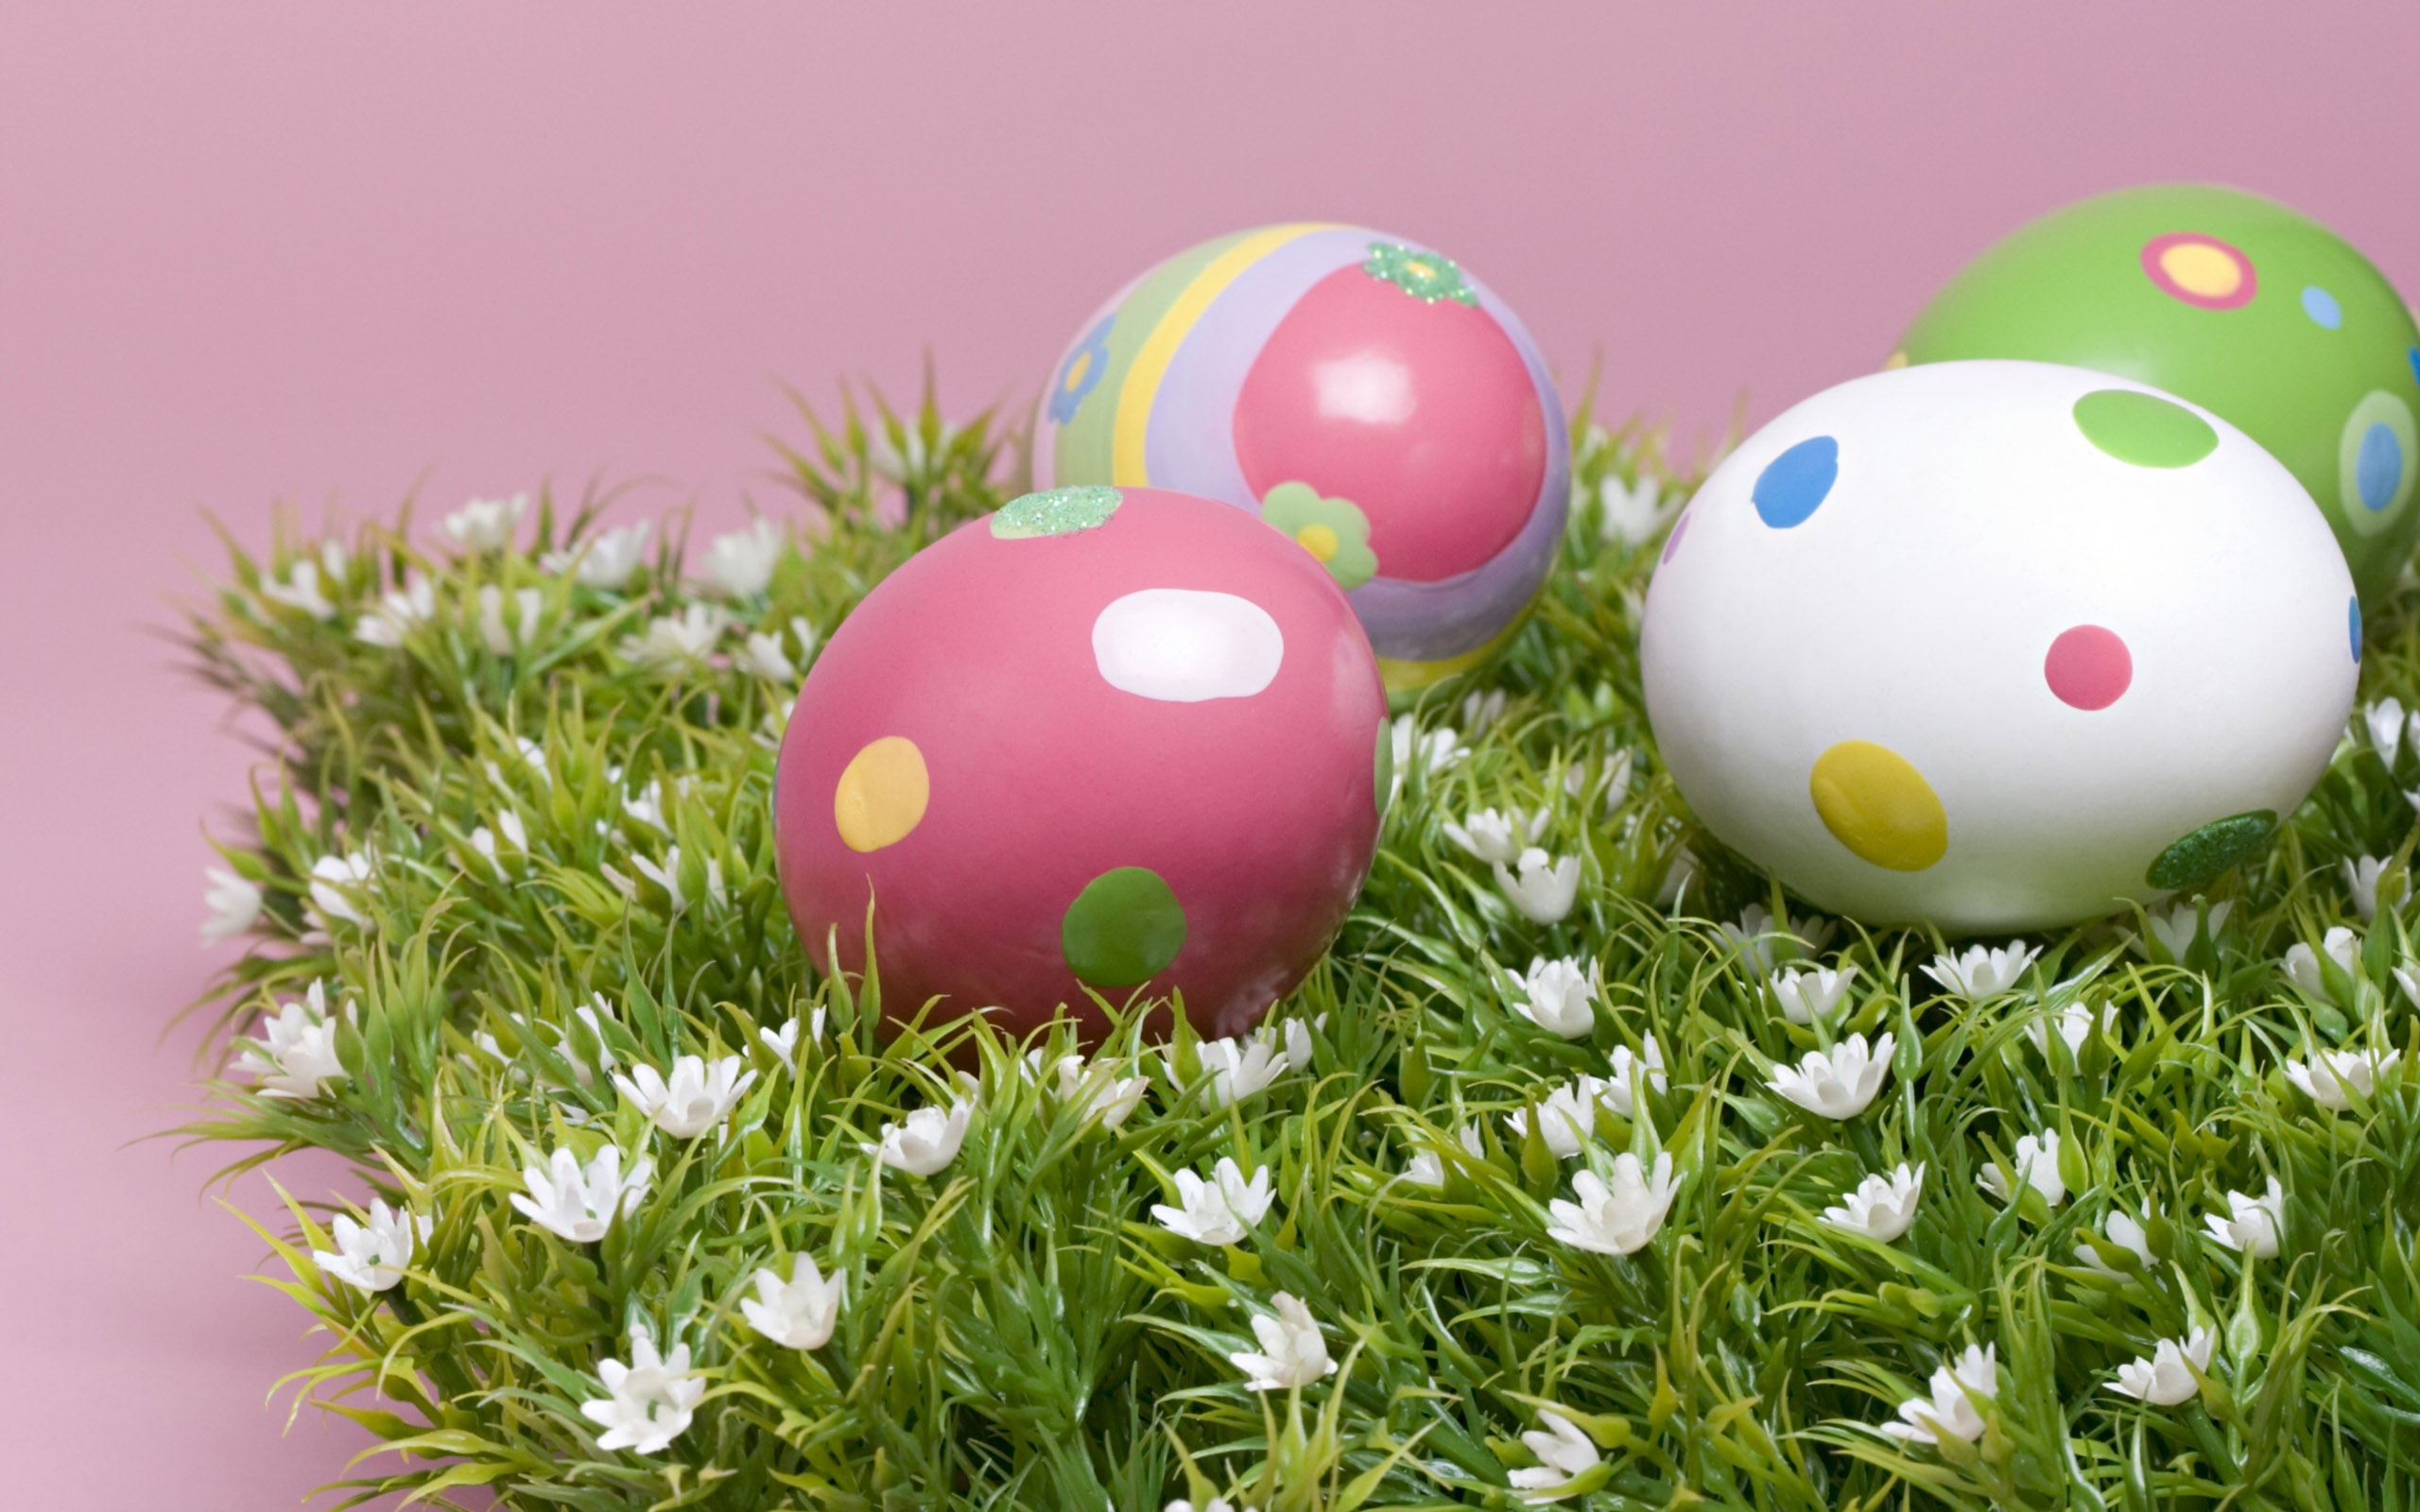 Cute Easter Eggs Picture HD wallpaper Wallpapers   HD 2560x1600